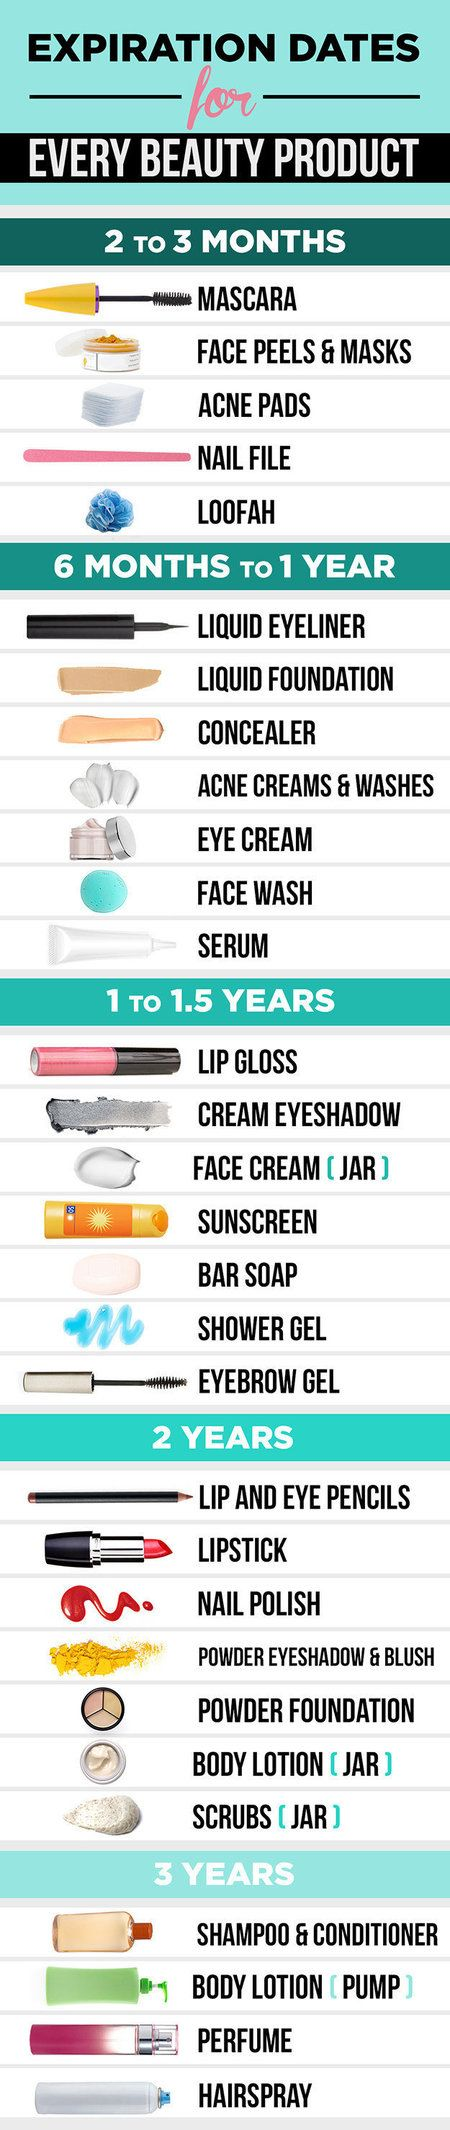 26 Fantastic Beauty Products You Can Subscribe to on Amazon It's hard to remember how long you should keep makeup around! I am guilty of this and need to clean out my makeup! The worst part is throwing away makeup that still looks good;) www.buzzfeed.com/....